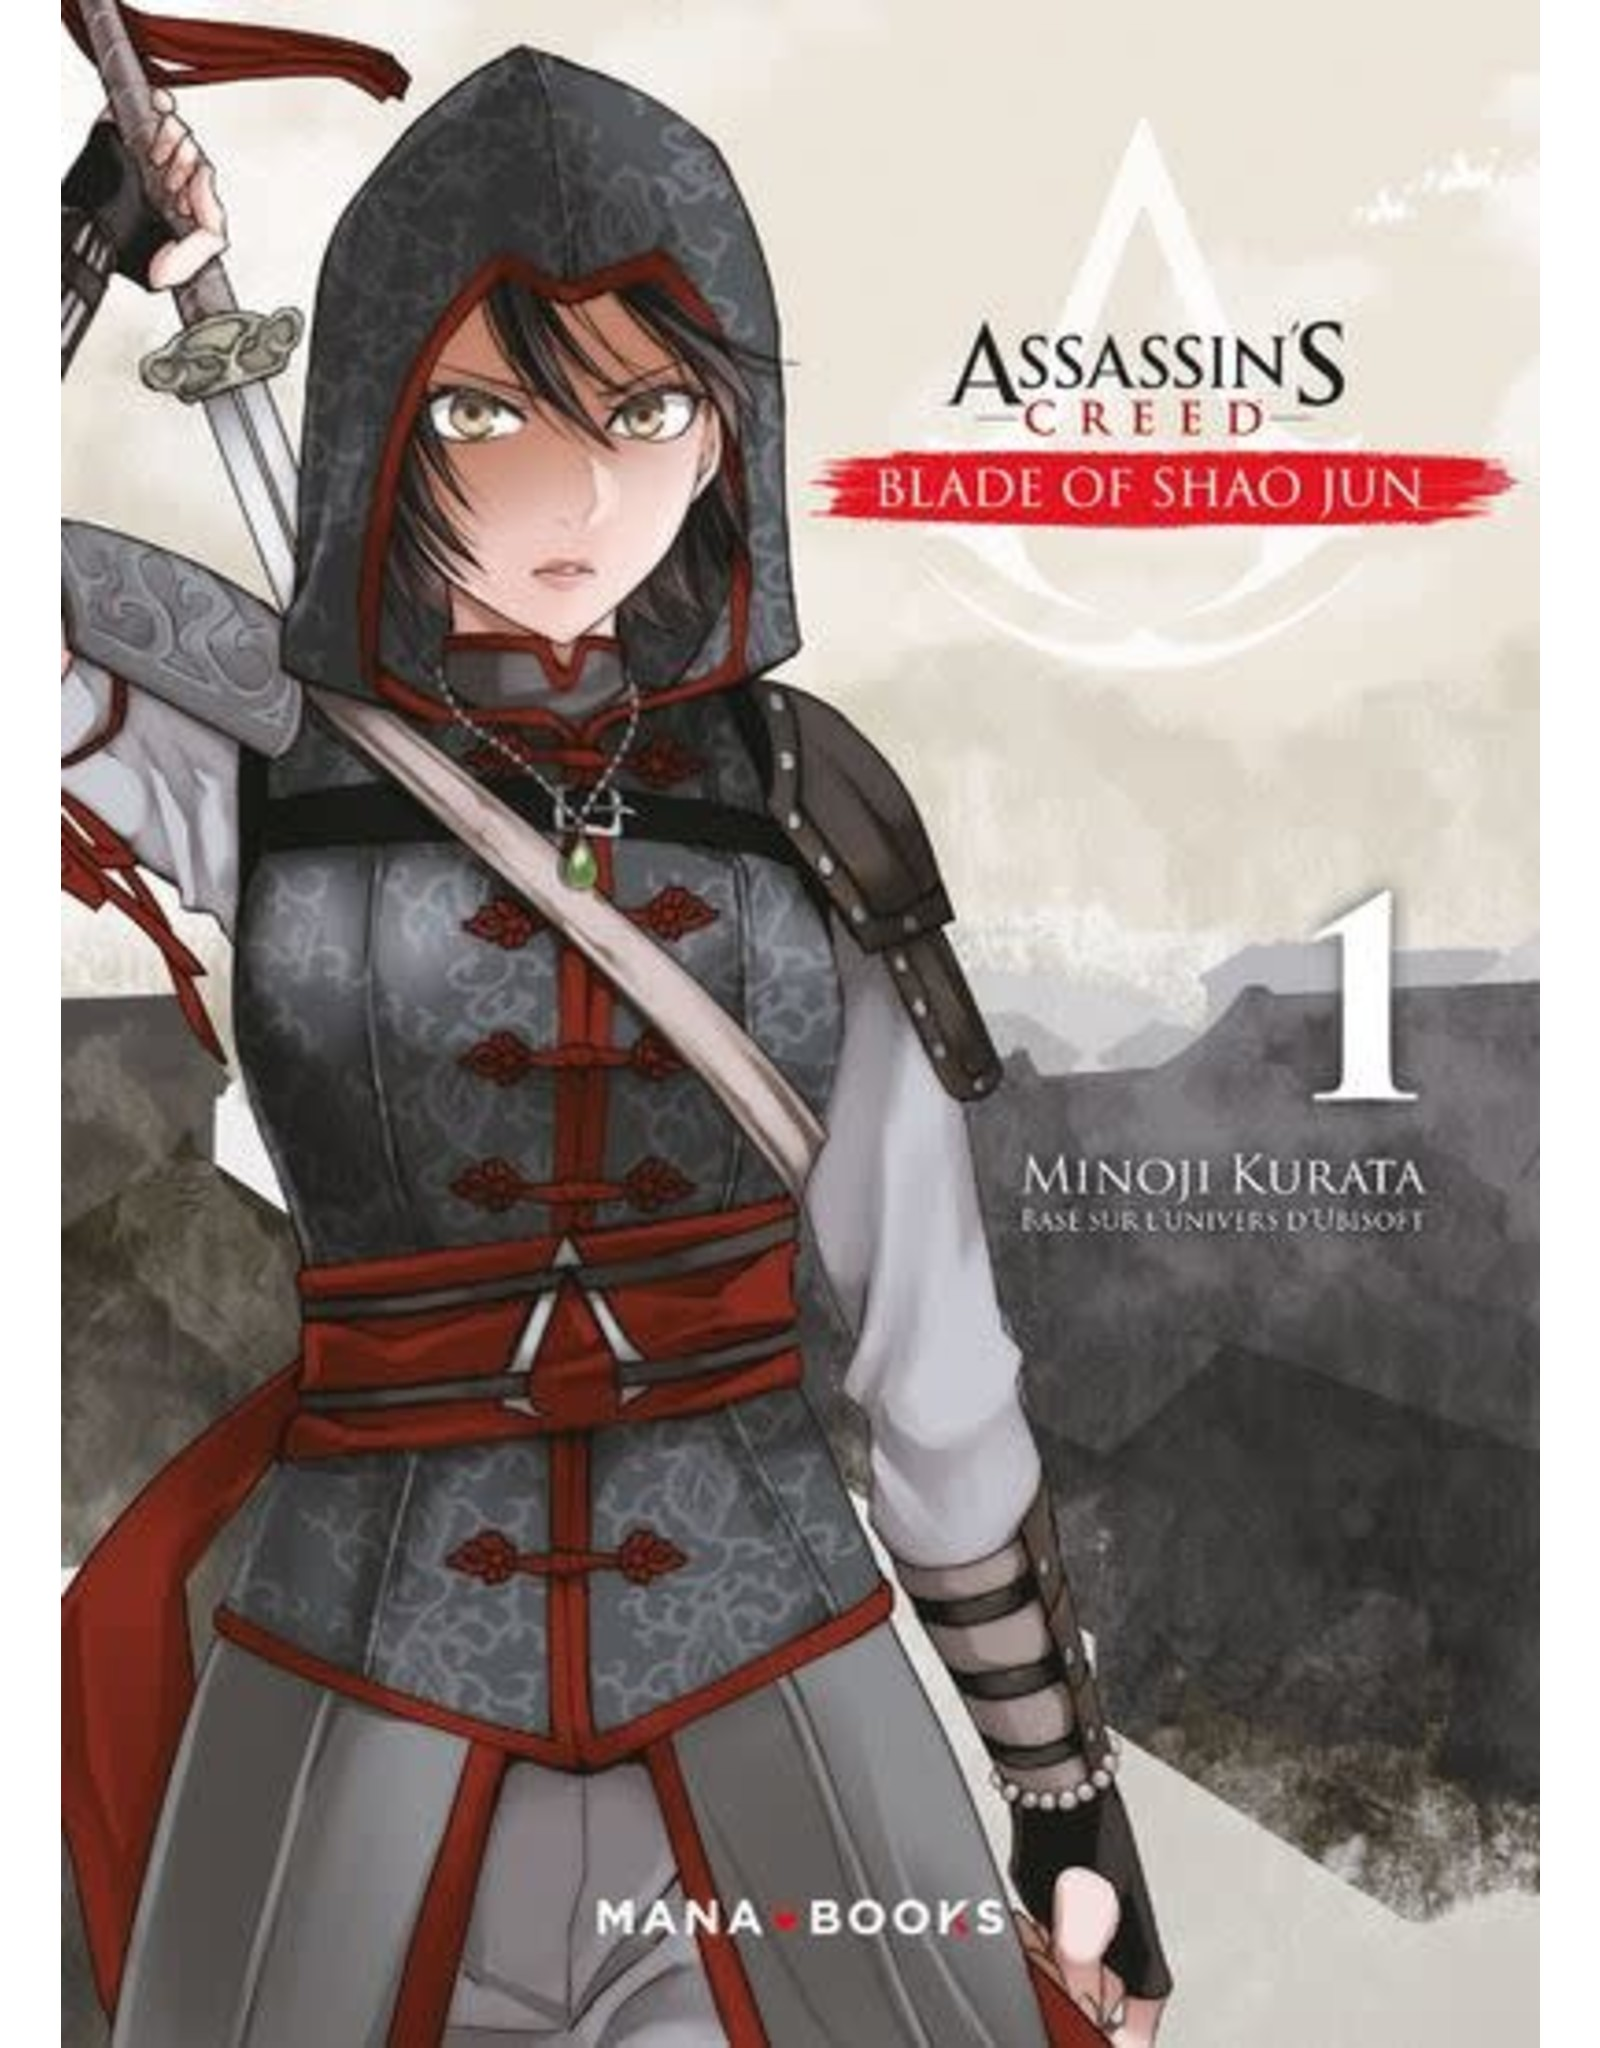 Assassin's Creed - Blade of Shao Jun 1 (Engelstalig) - Manga